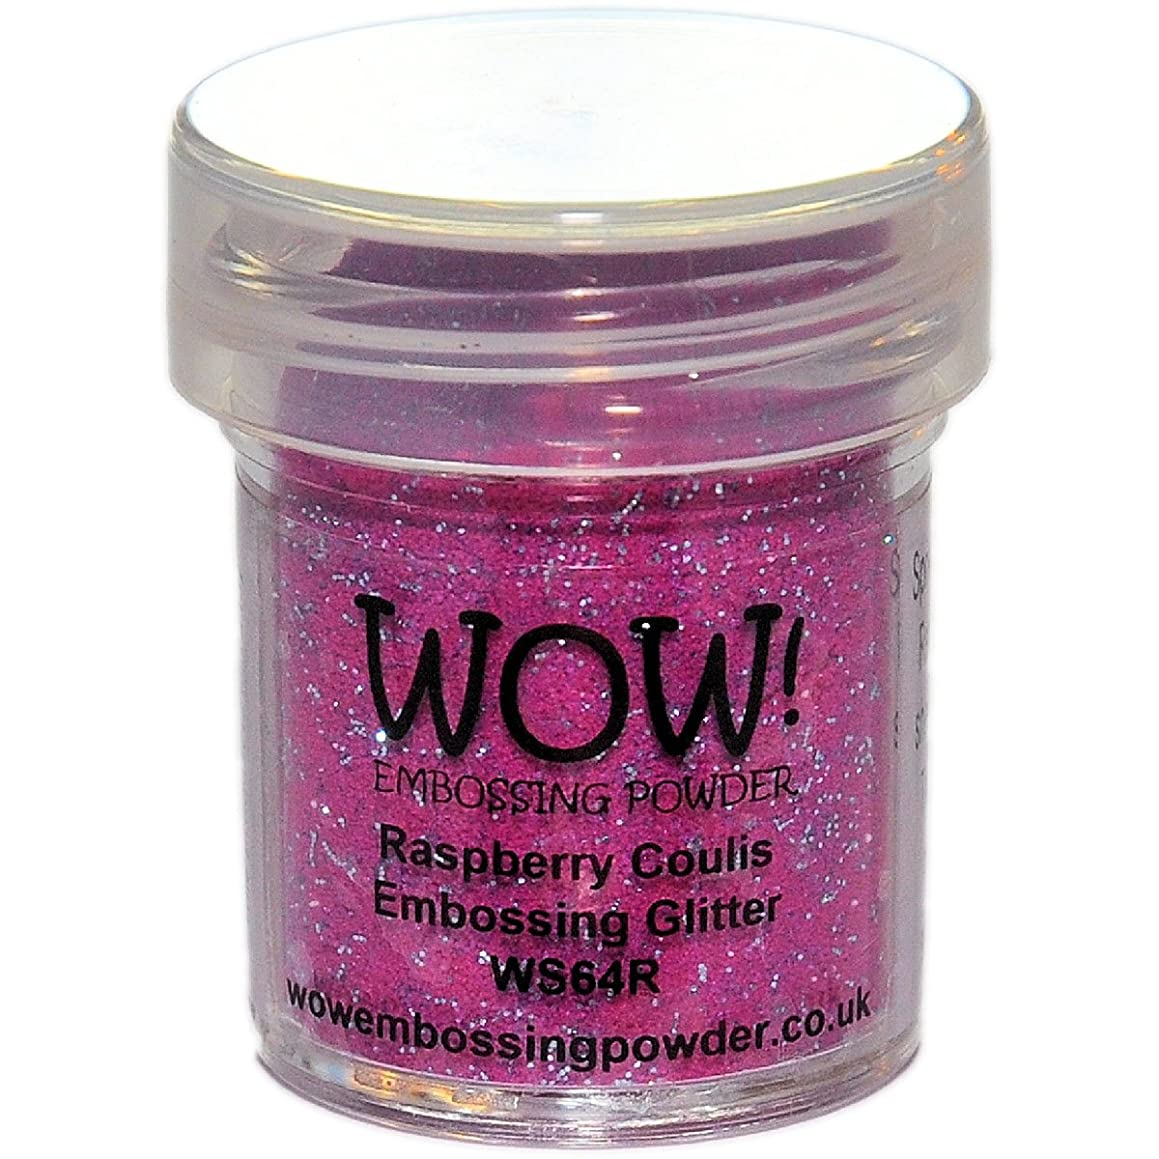 Wow Embossing Powder, 15ml, Raspberry Coulis